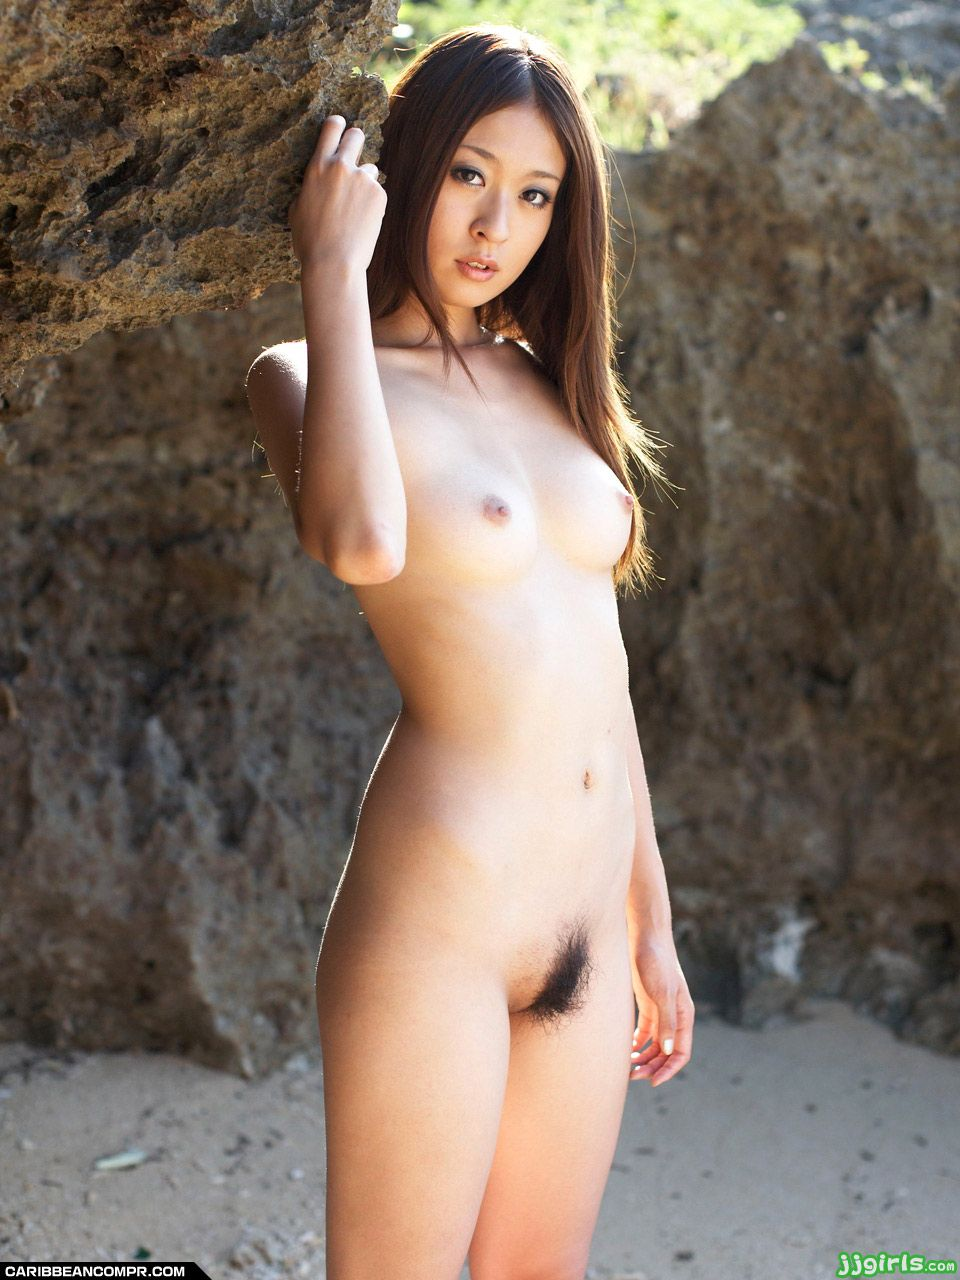 University asian girl nude